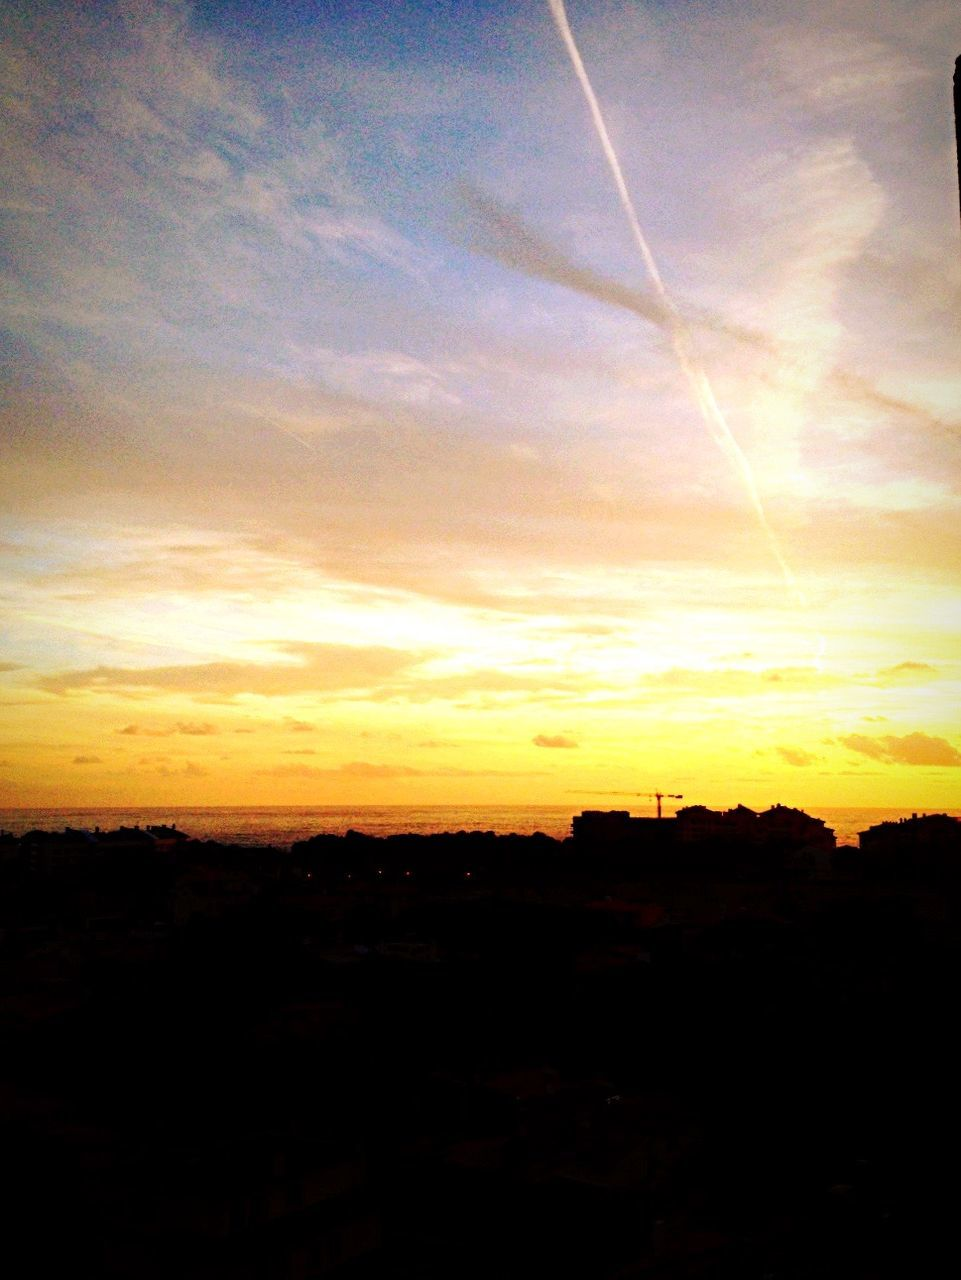 sunset, silhouette, no people, sky, vapor trail, nature, scenics, sun, beauty in nature, landscape, contrail, outdoors, day